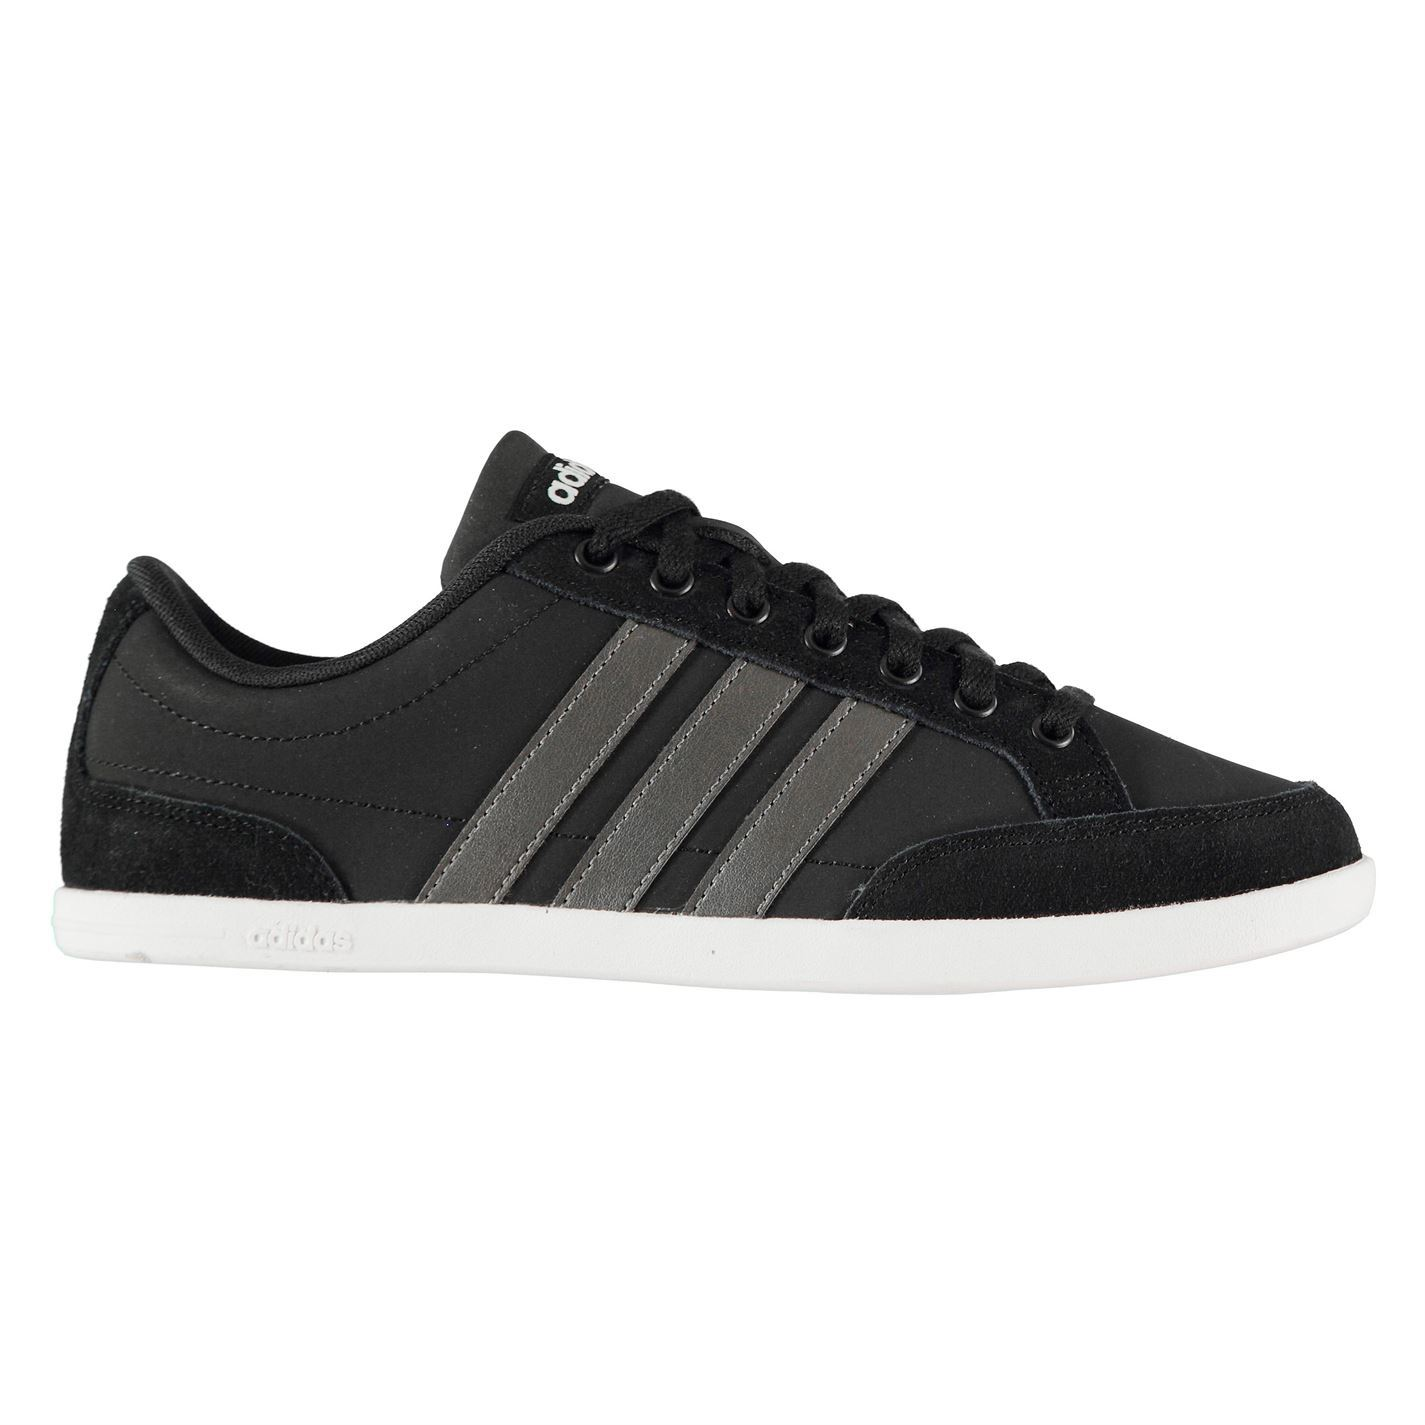 Adidas Suede  Uomo Caflaire Trainers Suede Adidas Lace Up Padded Ankle Collar Lightweight b526a6